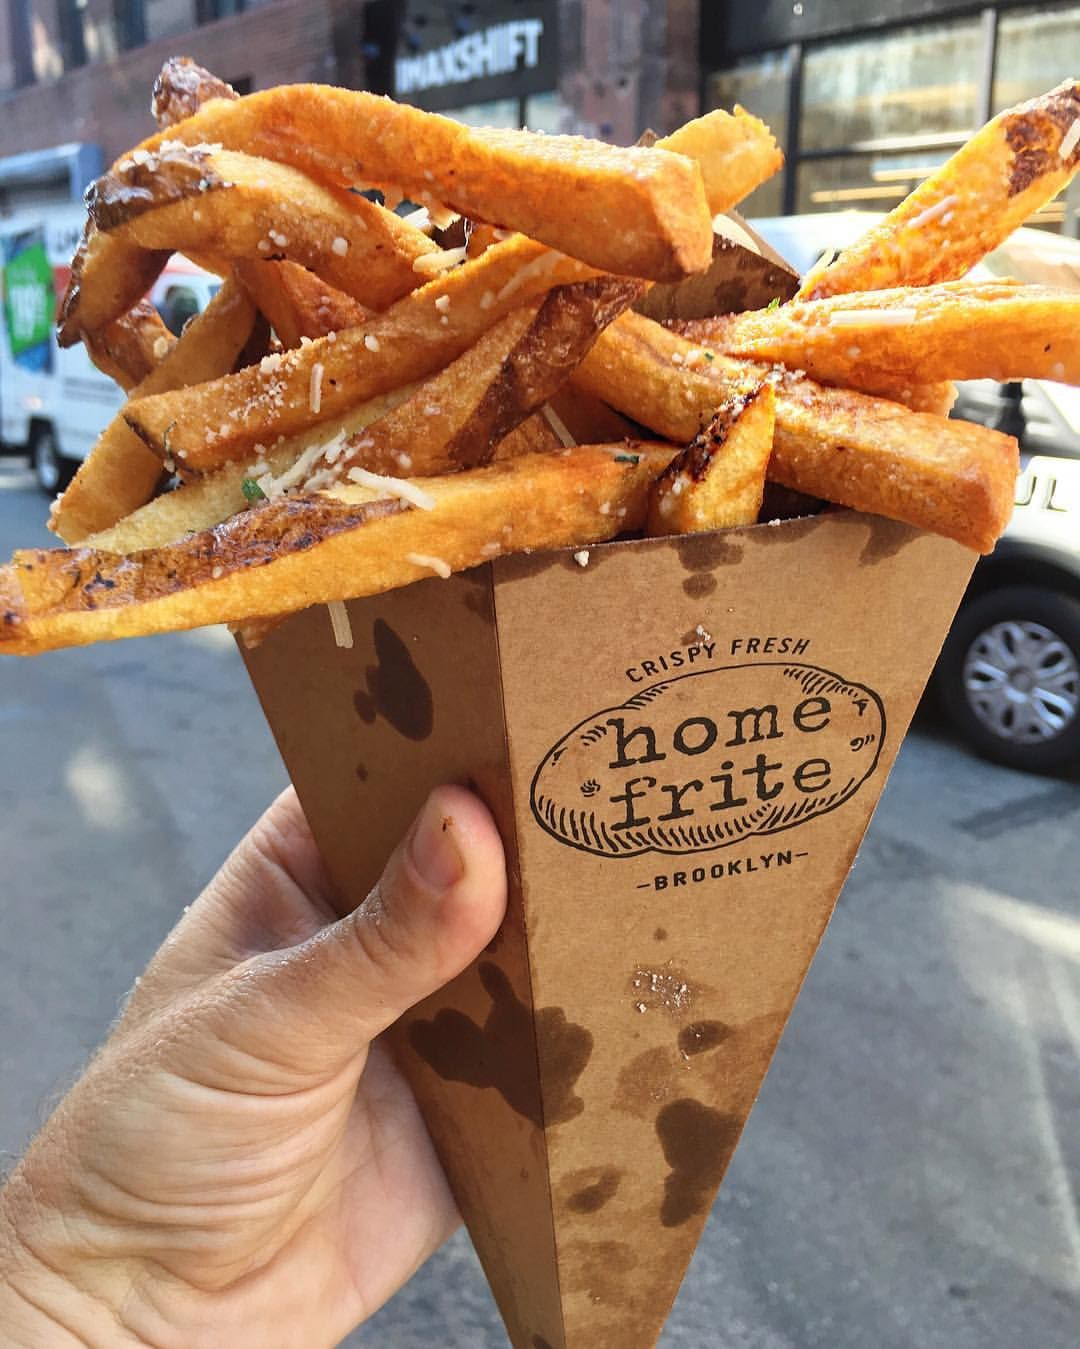 Home frites by @scottlipps #fries #smorgasburg @smorgasburg (at DUMBO Brooklyn…